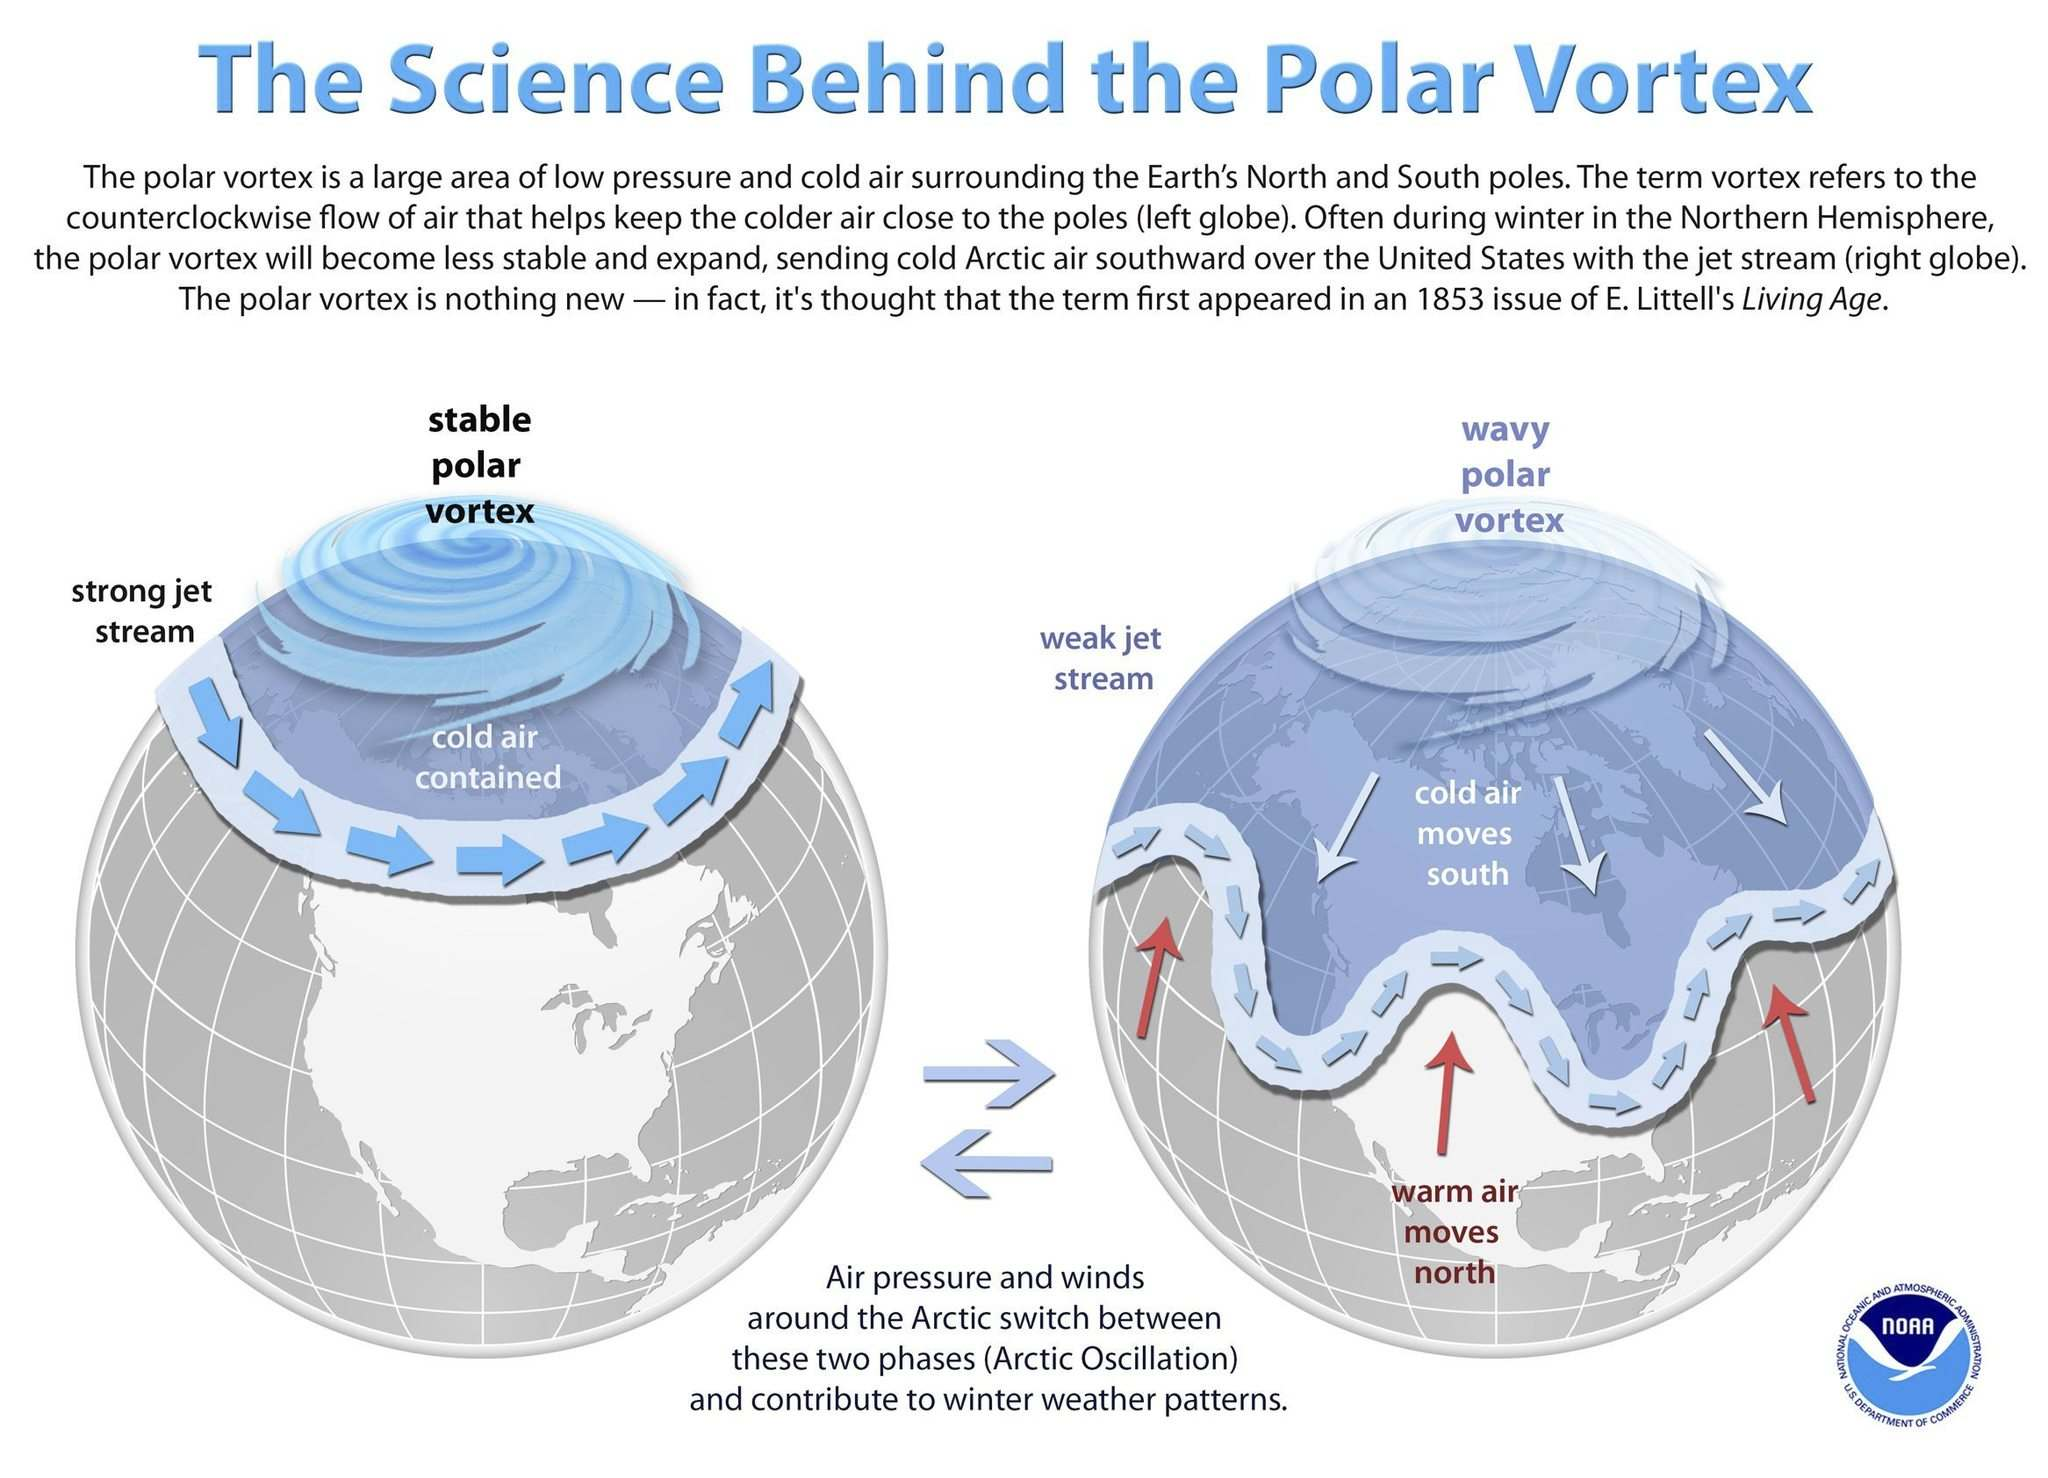 NATIONAL OCEANIC AND ATMOSPHERIC ADMINISTRATION</p><p>Polar Vortex graphic</p>